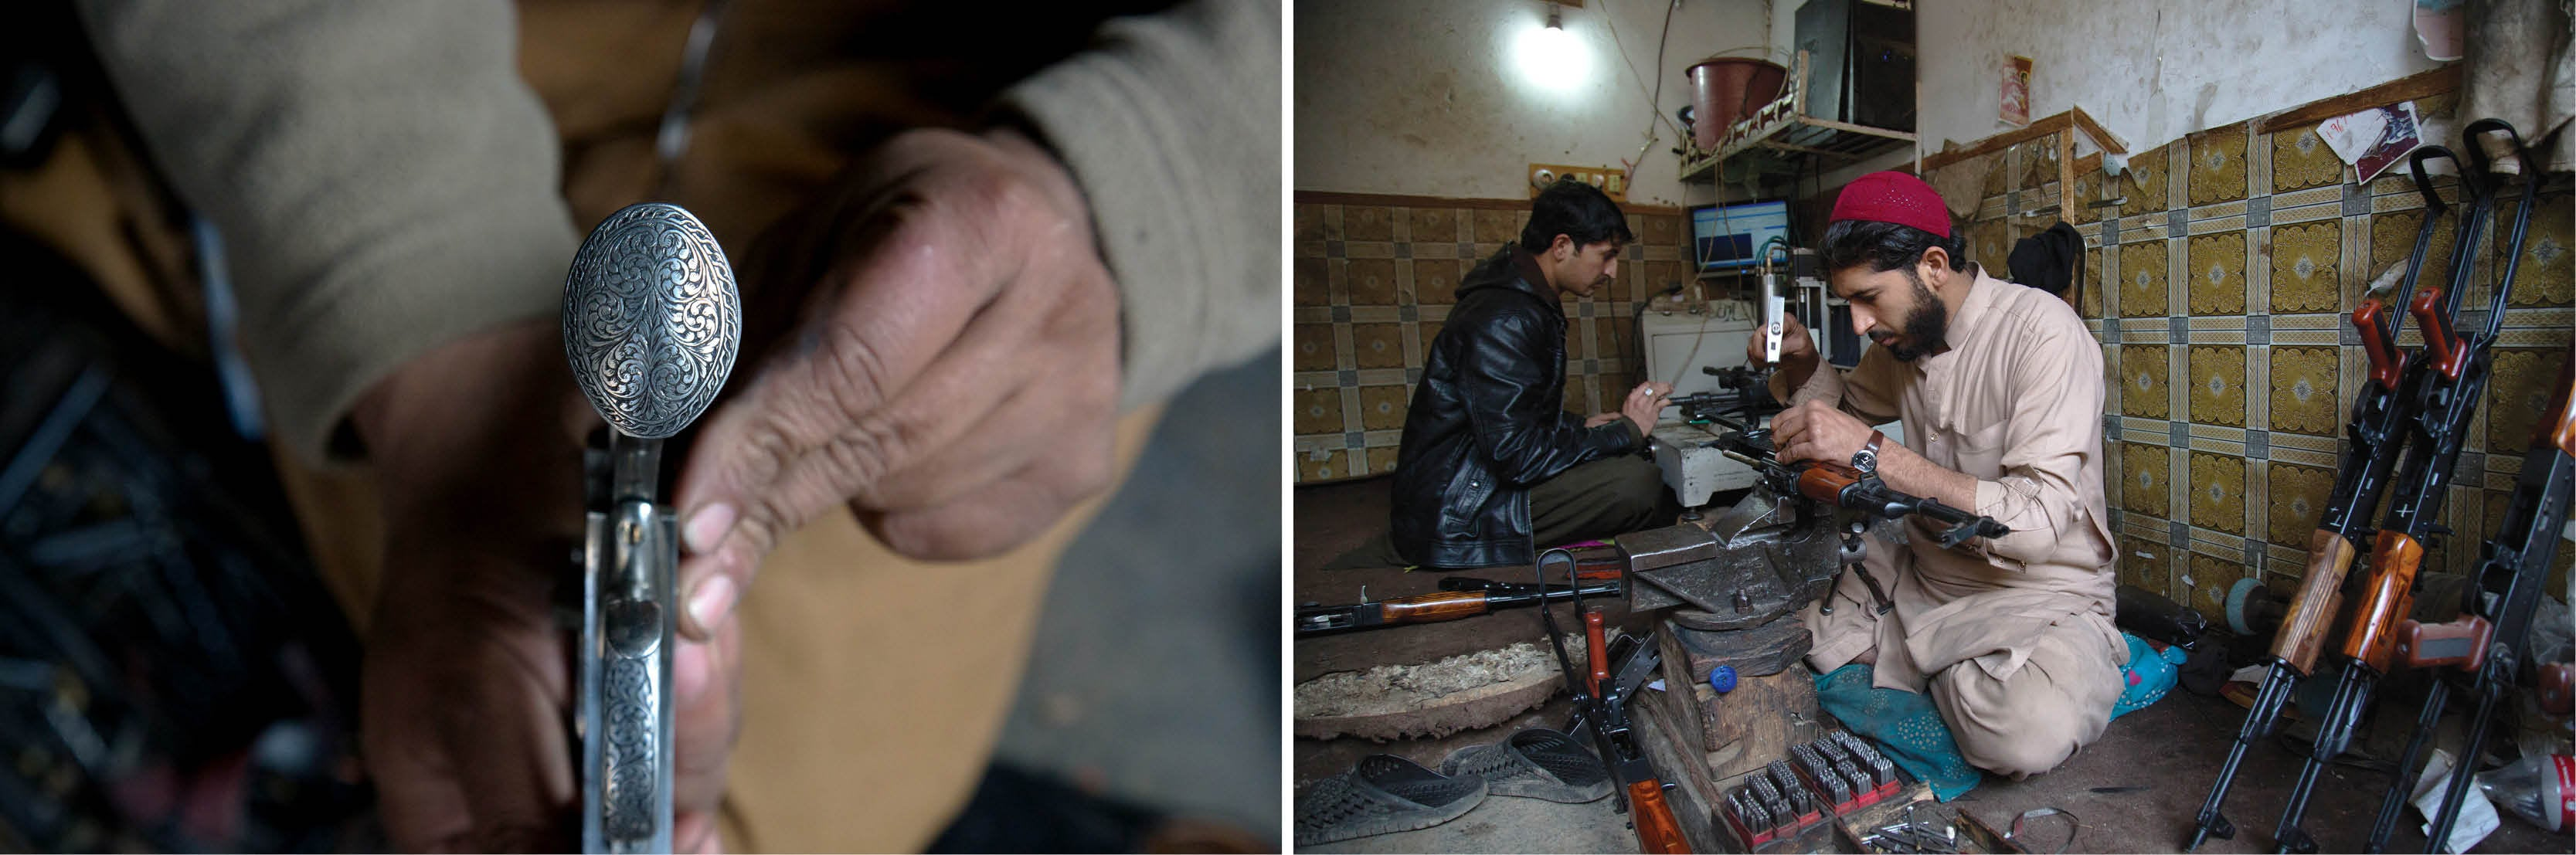 (Left) Arms traders in Darra Adam Khel main bazaar are experts in carving floral designs on weapons; (Right) An arms trader works on an AK-47 in Darra Adam Khel main bazaar